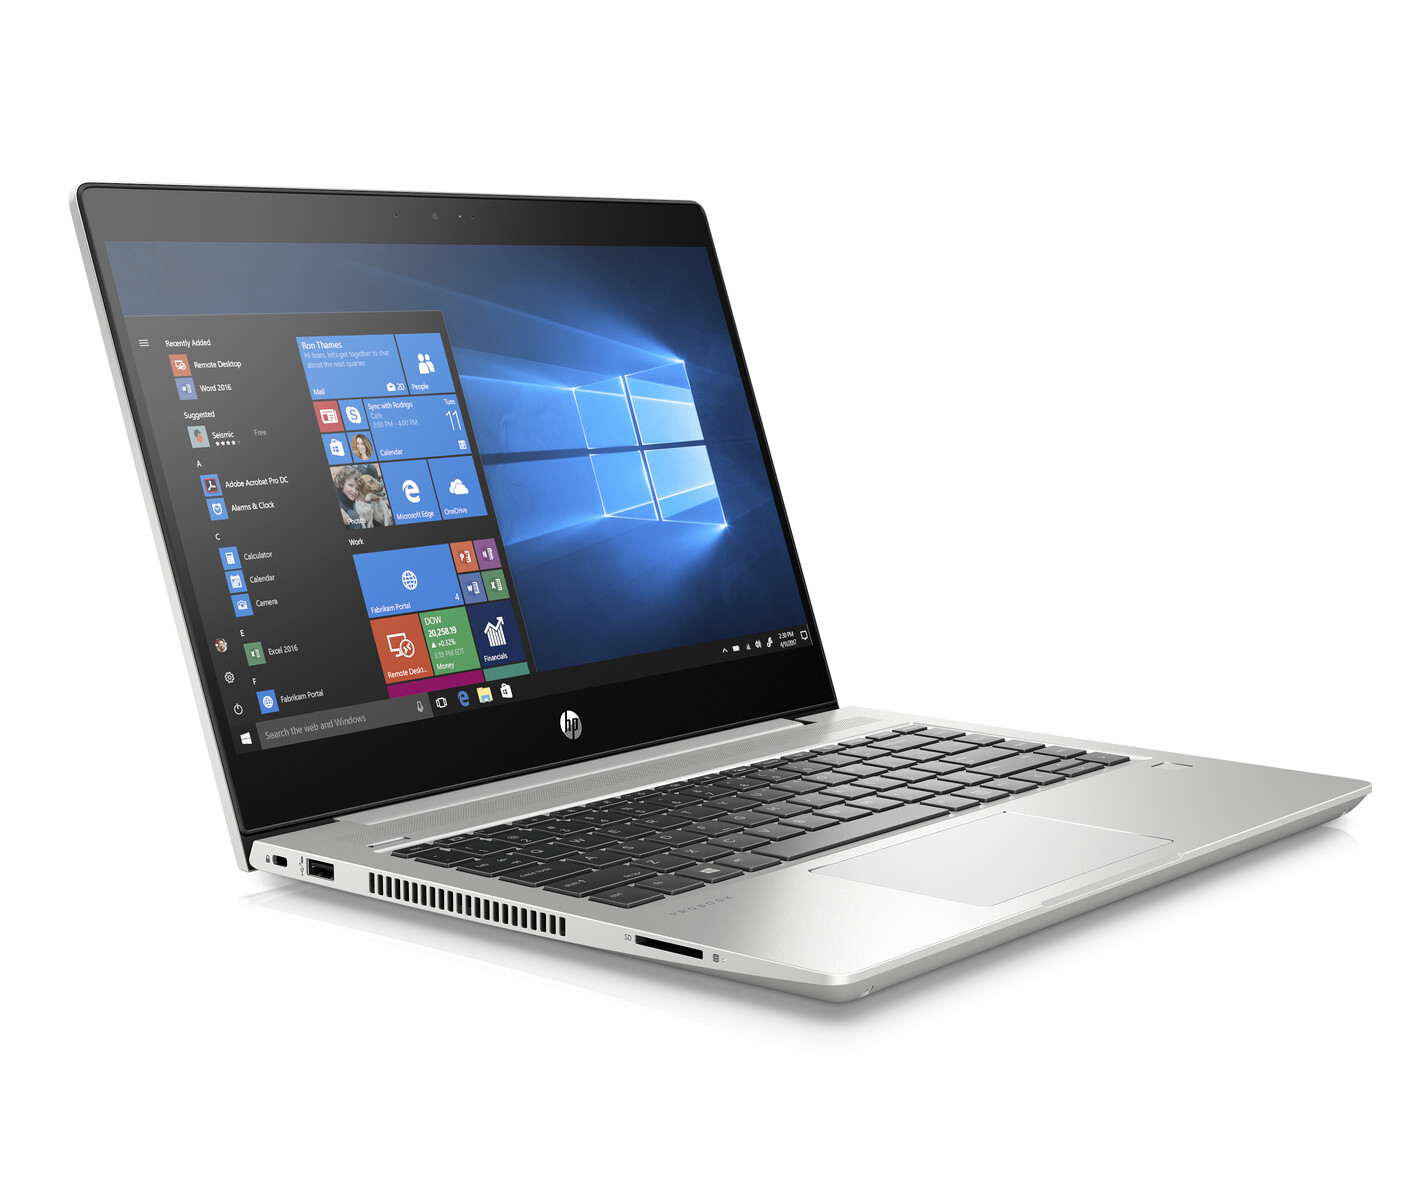 Upcoming HP ProBook 445R G6 and 455R G6 will carry AMD Ryzen